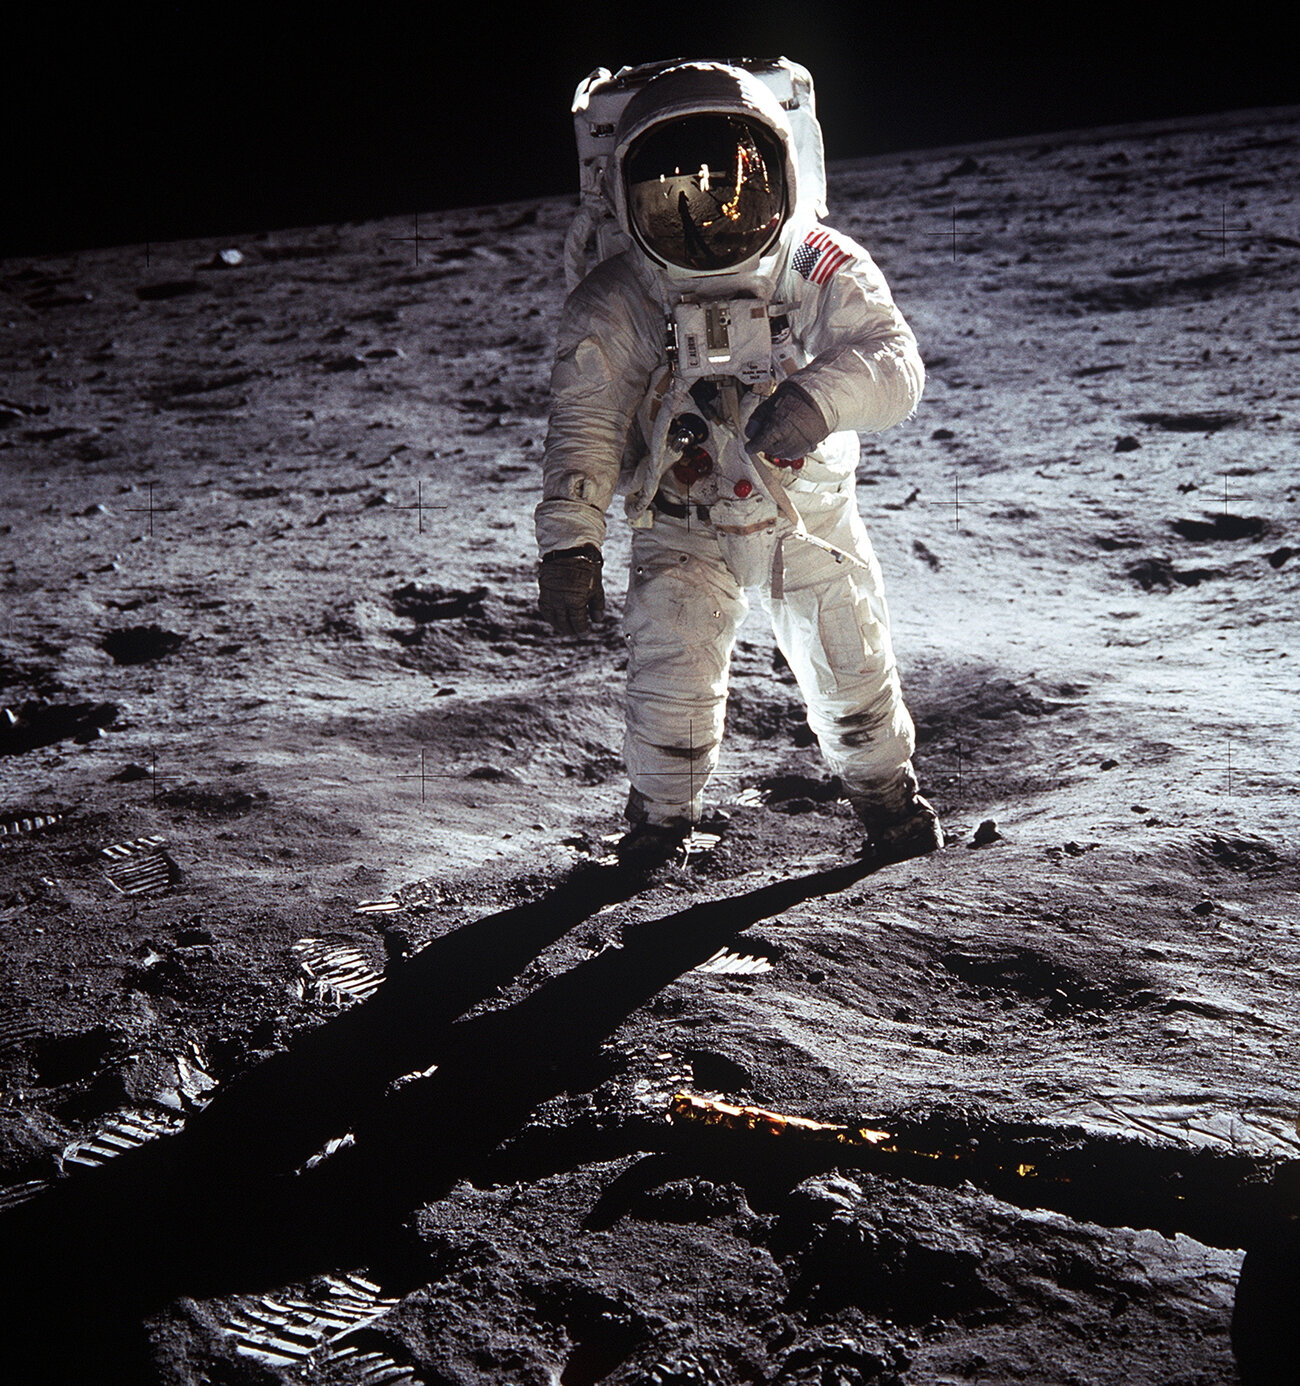 Astronaut Buzz Aldrin walks on the surface of the moon near the leg of the lunar module Eagle during the Apollo 11 mission. (Neil Armstrong/NASA)